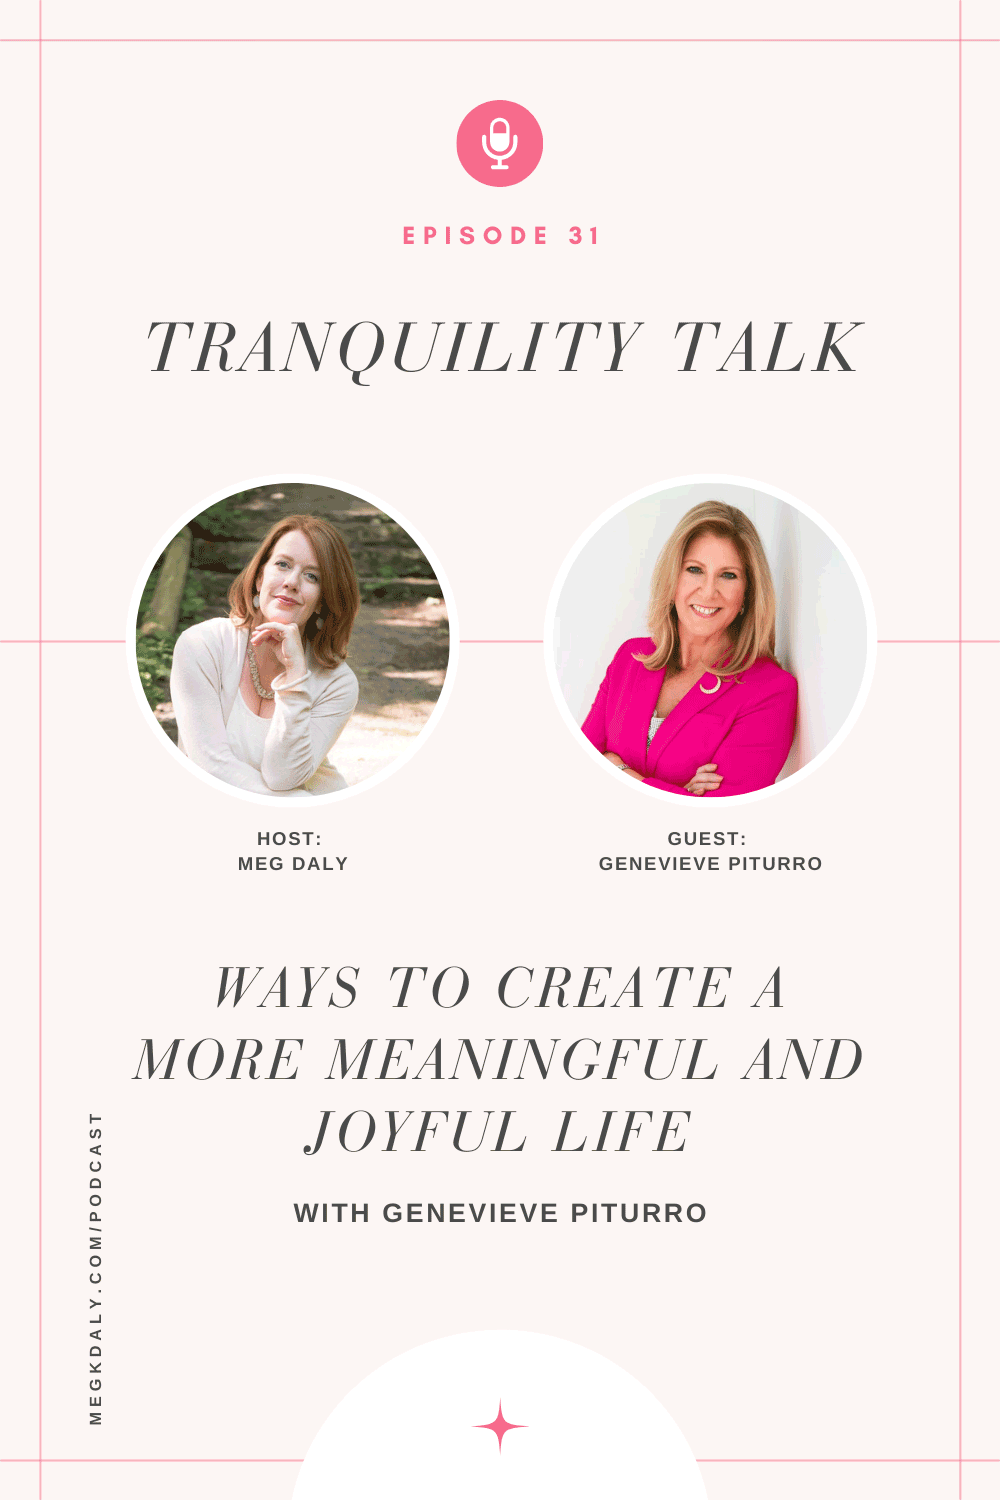 Ways To Create A More Meaningful and Joyful Life with Genevieve Piturro